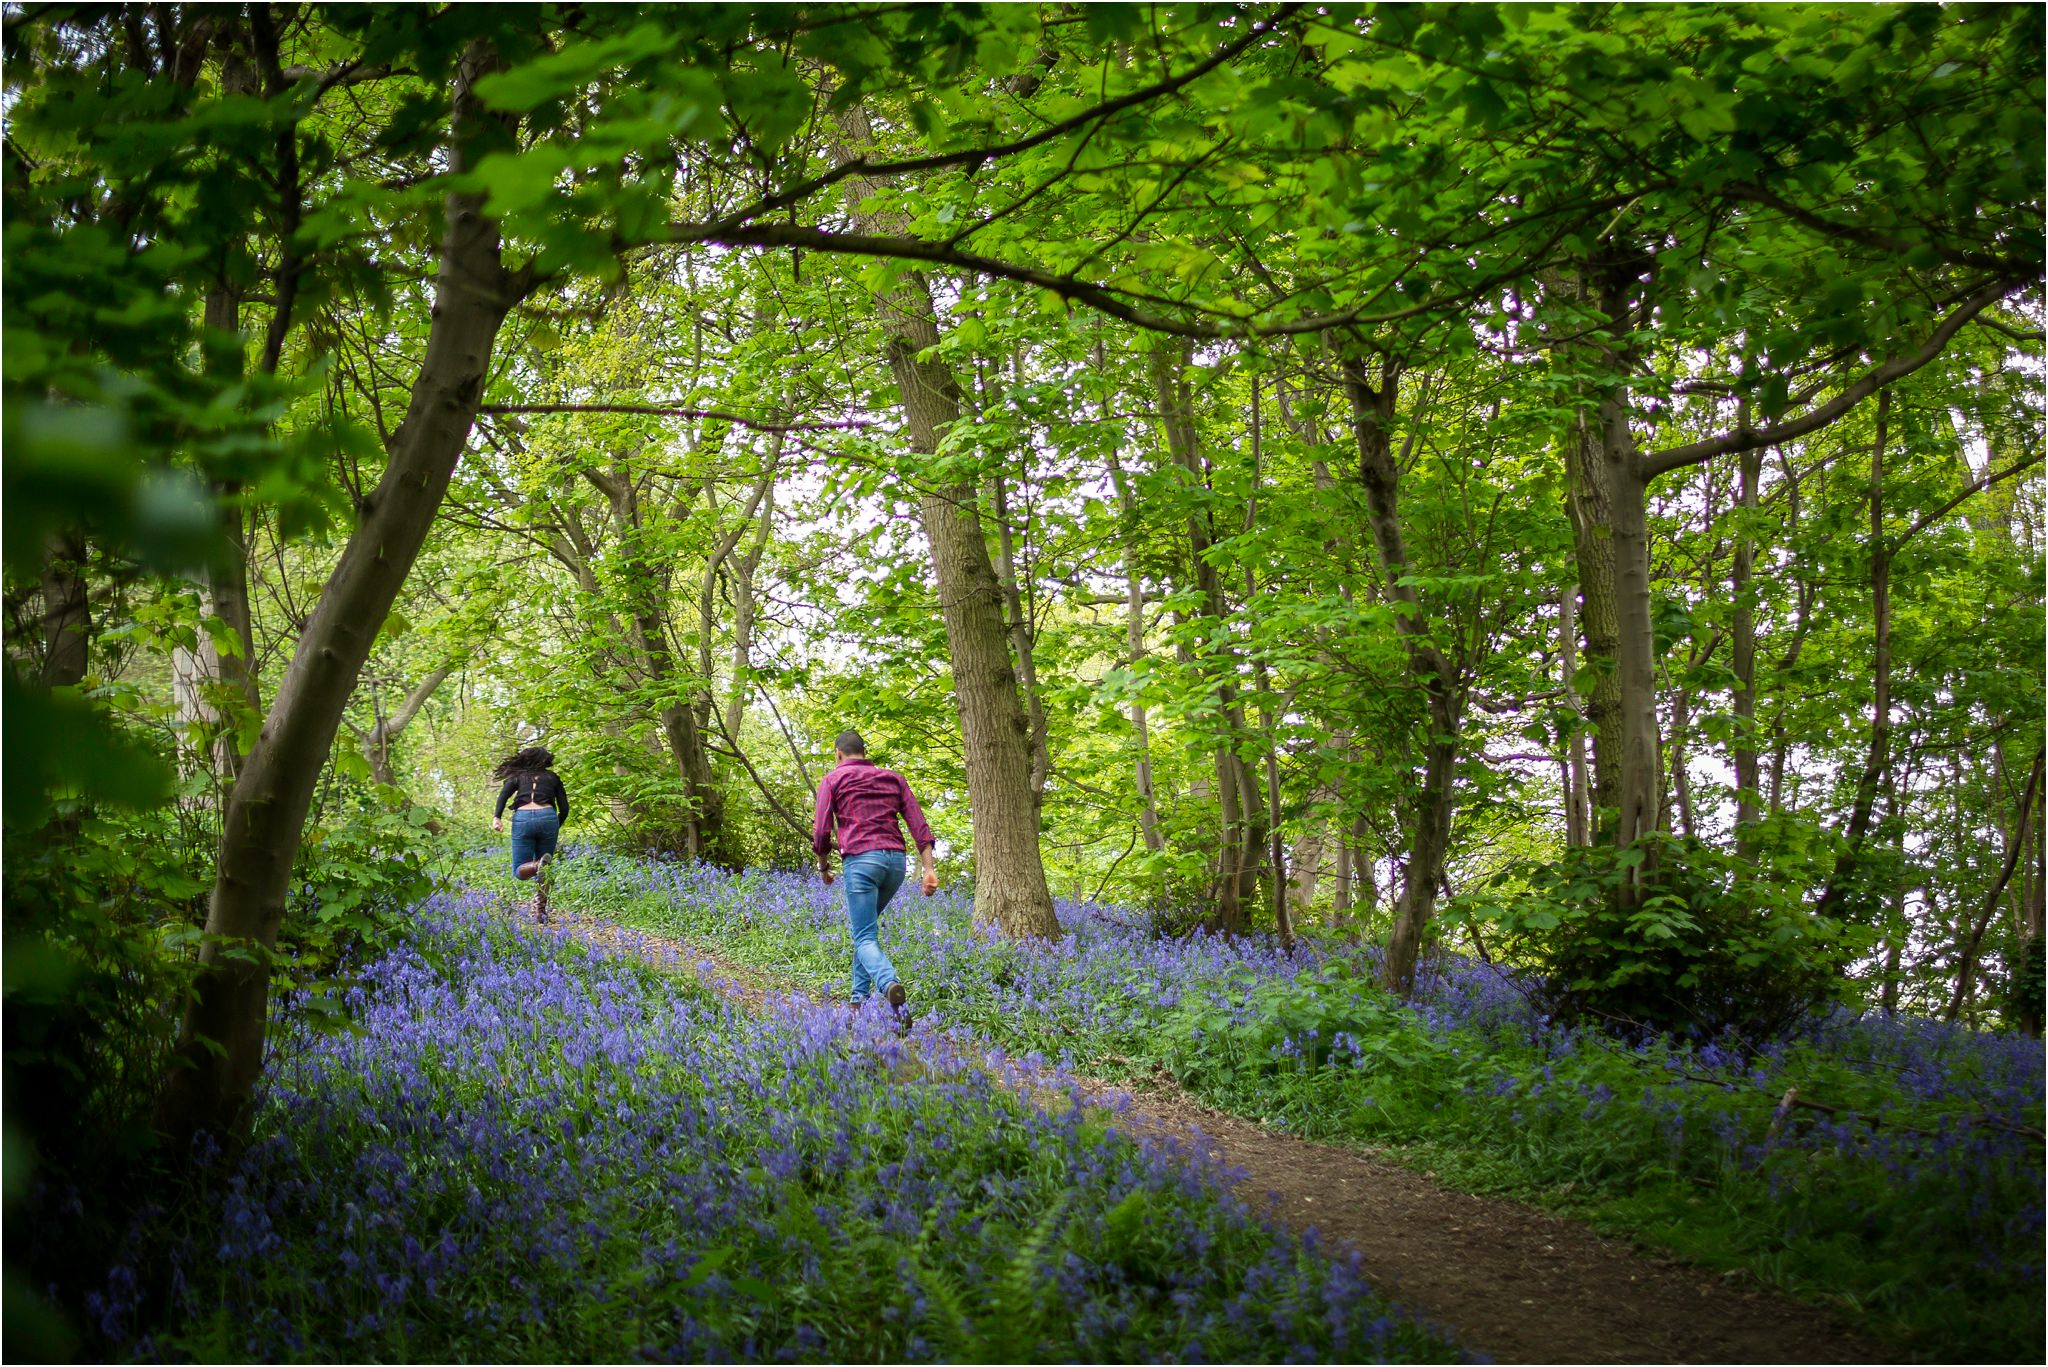 Couple racing up a hill amongst bluebells on the grounds of The Fish Hotel in the Costwolds